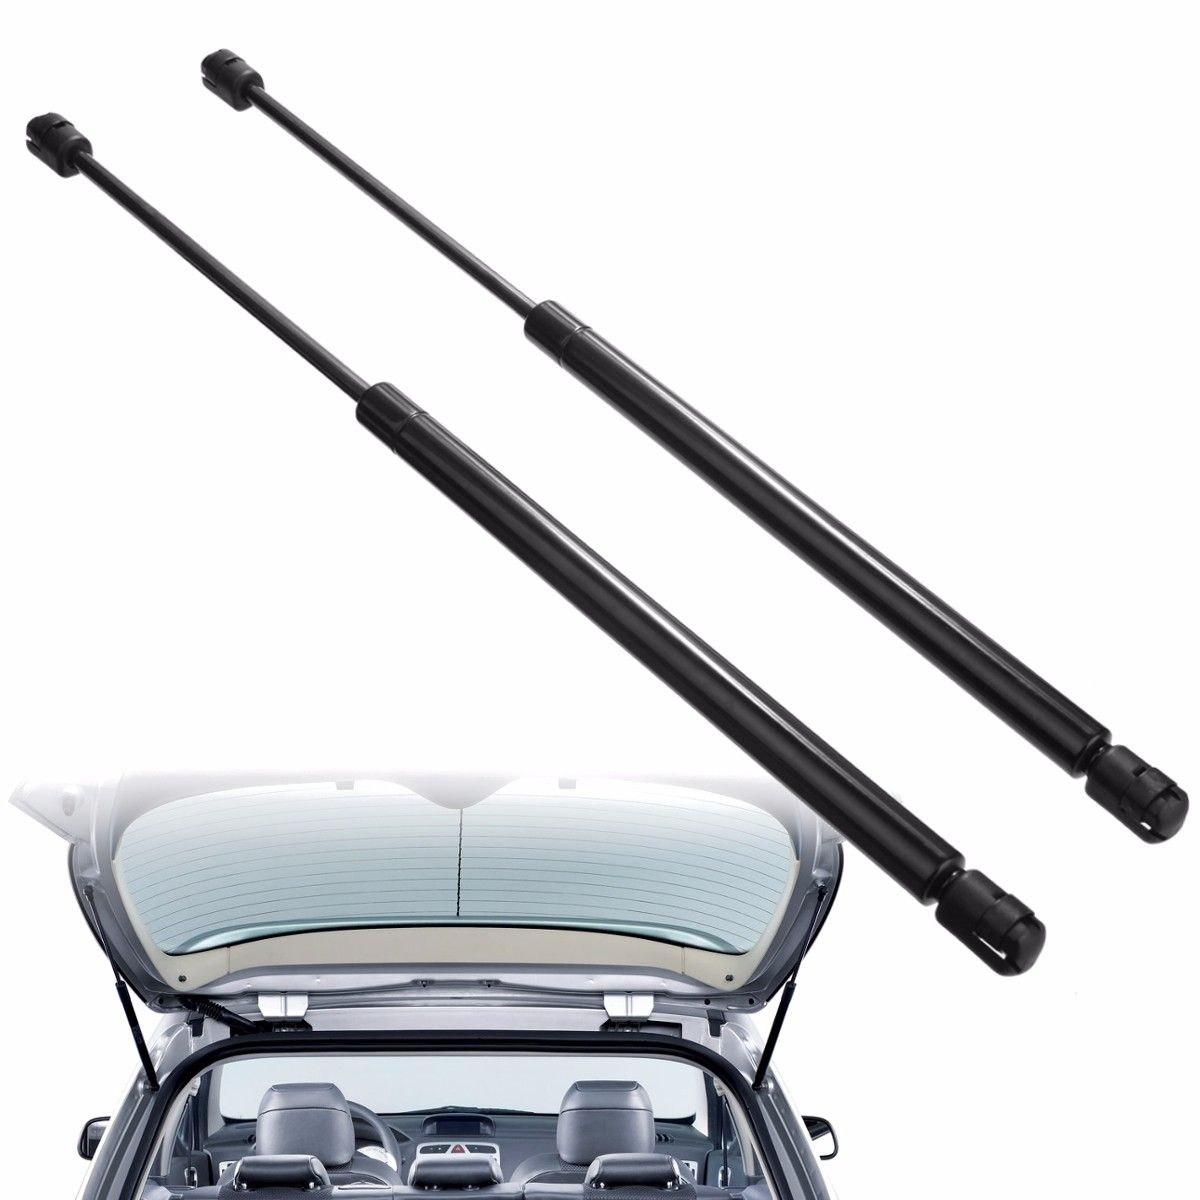 For Peugeot 307 2002-2008 20 inch Rear Tail Gate Gas Struts Boot Holders Lifter Support